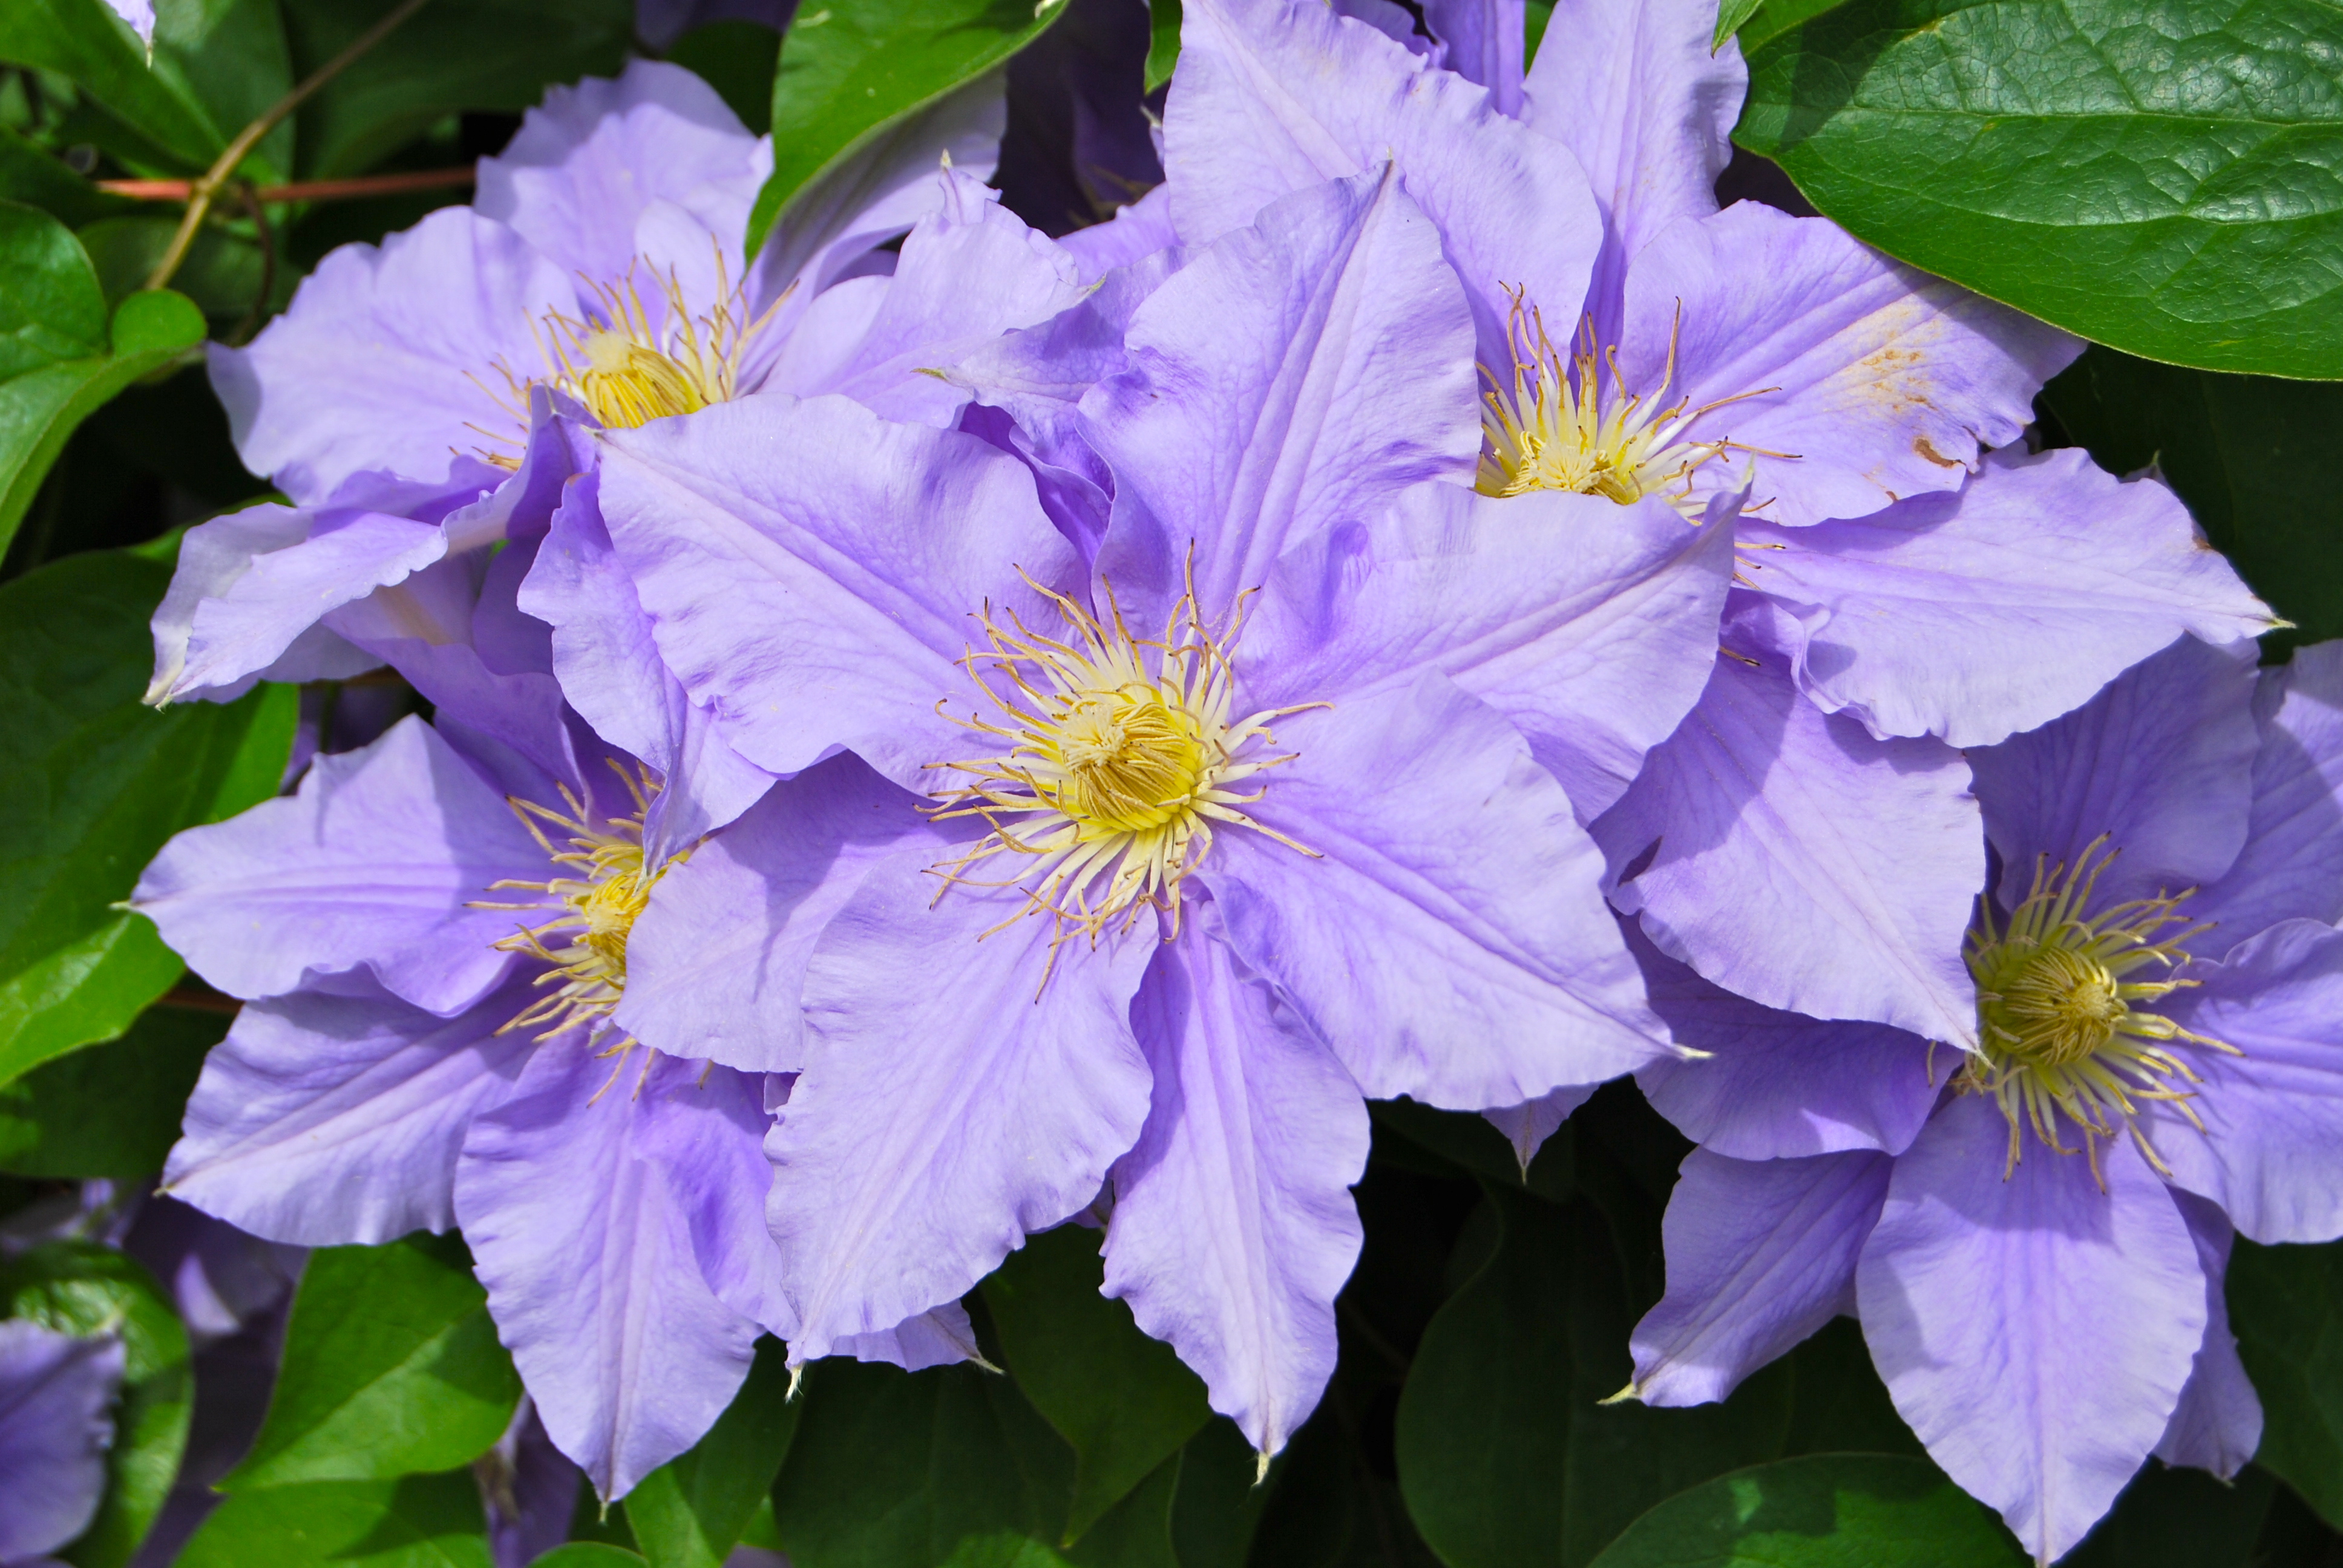 Do you know the difference between annuals vs perennials delmarvalife starr070906 8702impatienshawkeri purpleclematis1 izmirmasajfo Images